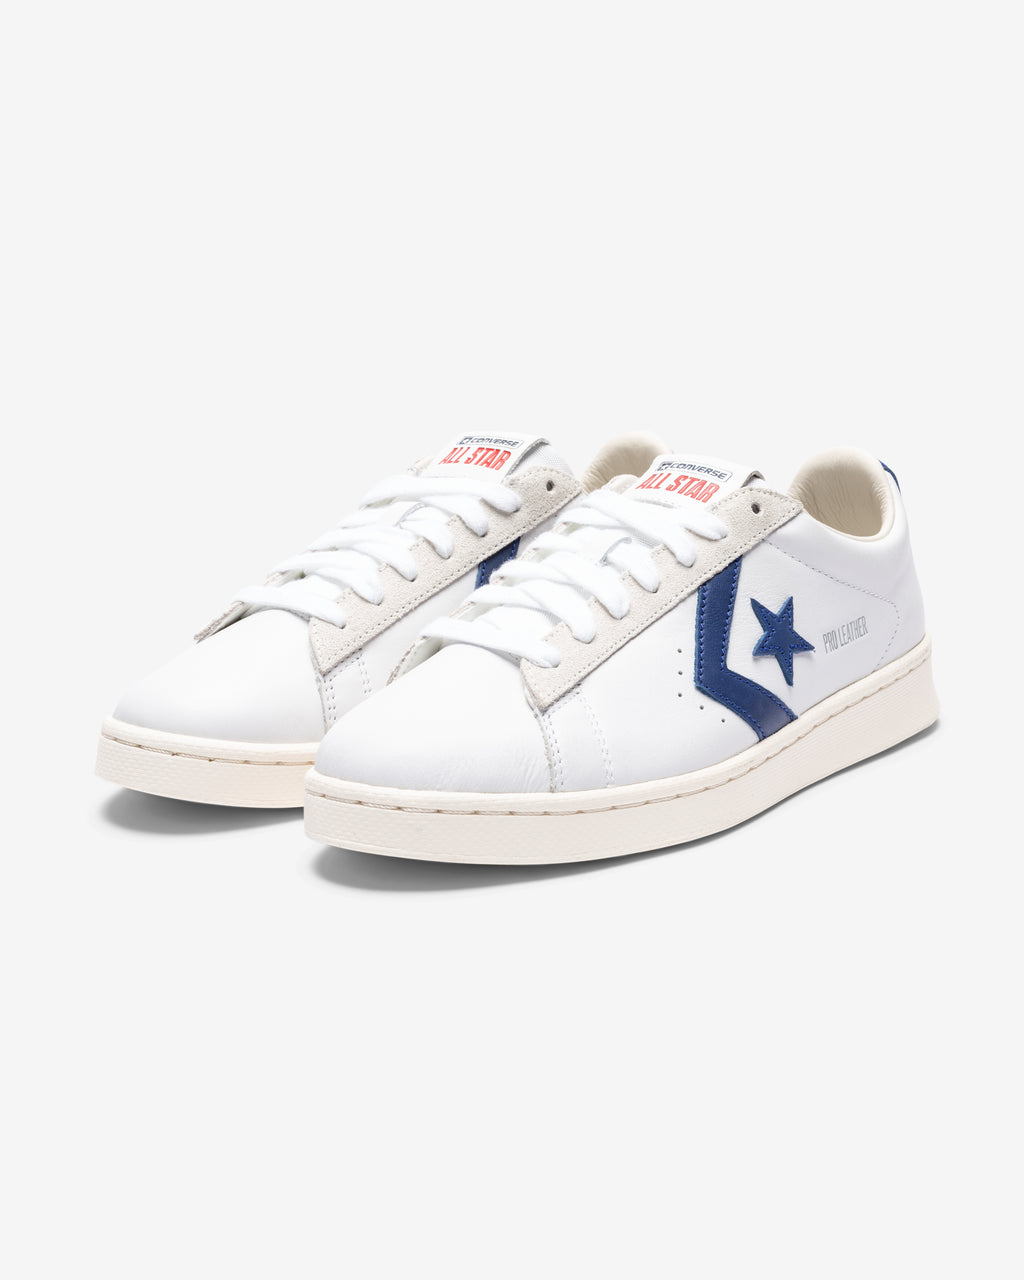 PRO LEATHER OX - WHITE/ RUSHBLUE/ EGRET